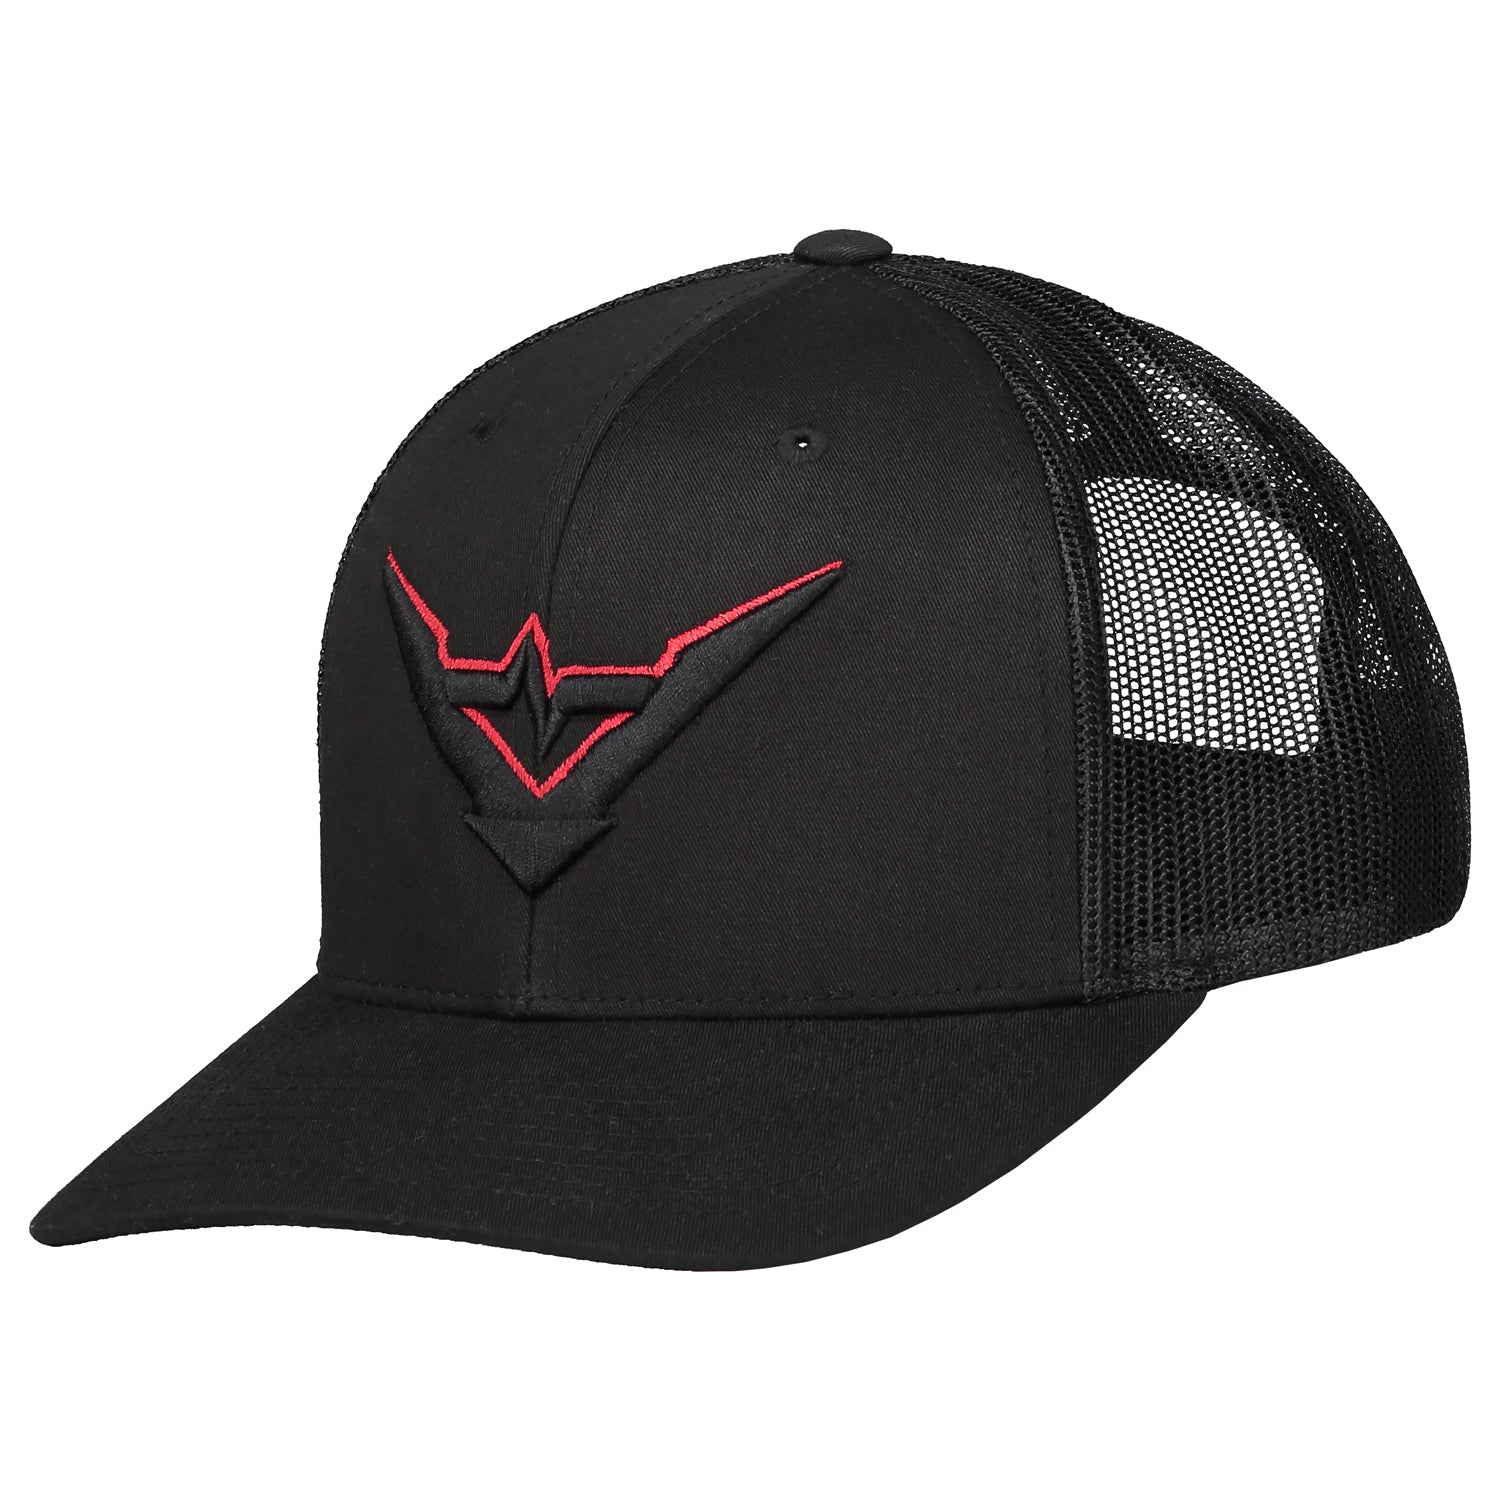 Stealth Mode truckercap (black)